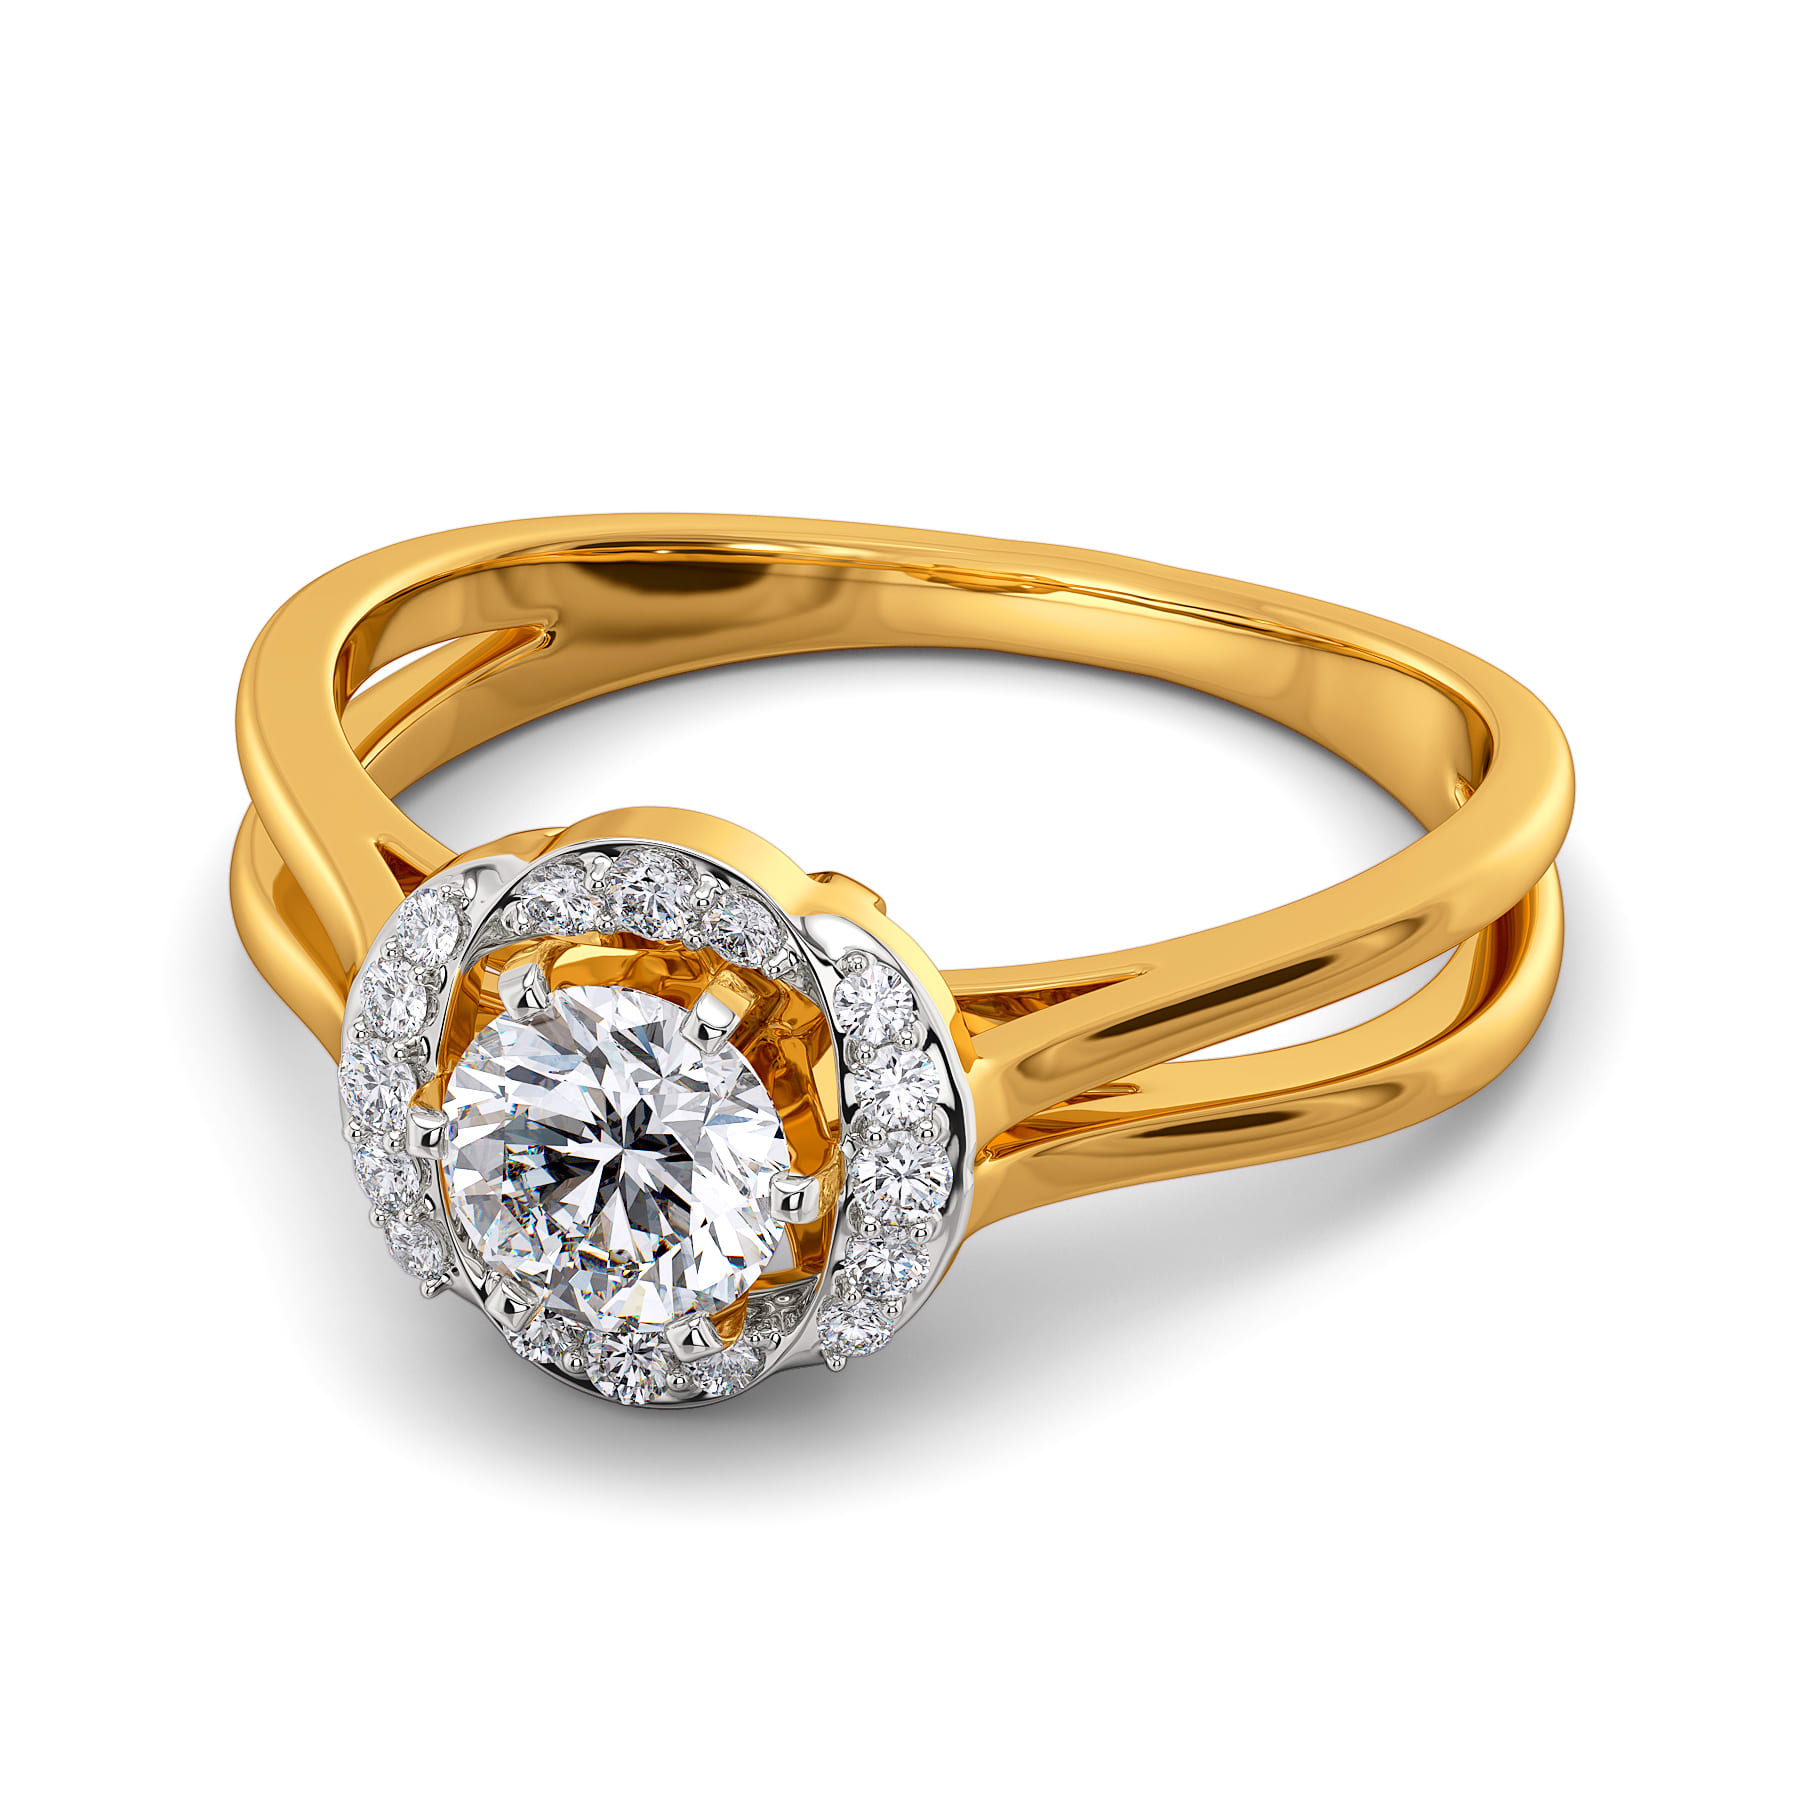 A Sneak Peek Into Wedding and Engagement Ring Metals